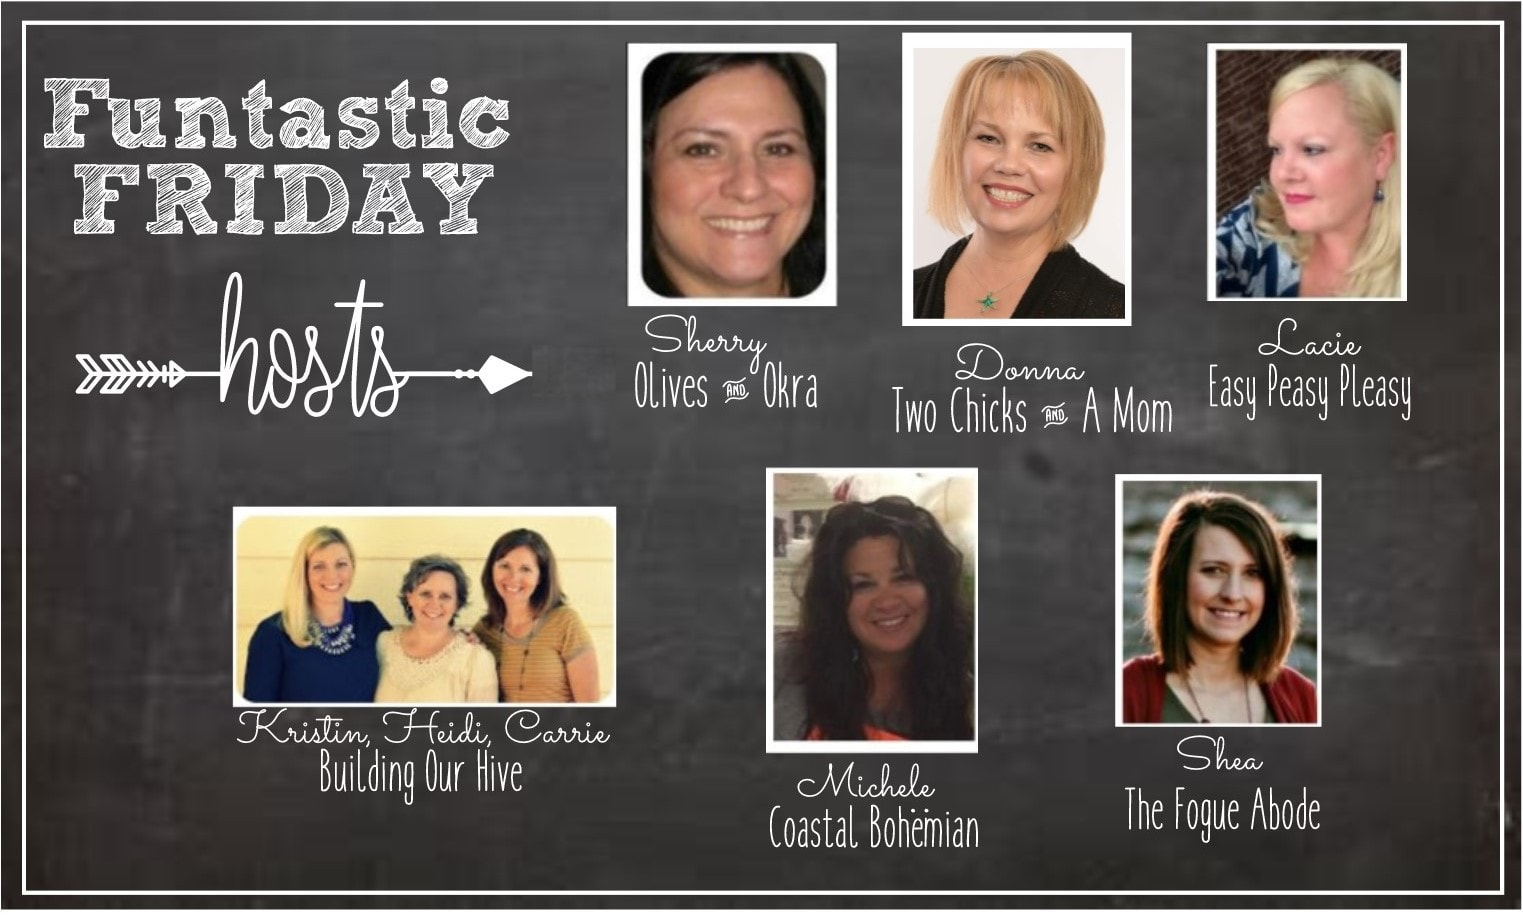 Funtastic Friday Link Party. Come linkup your blog posts.